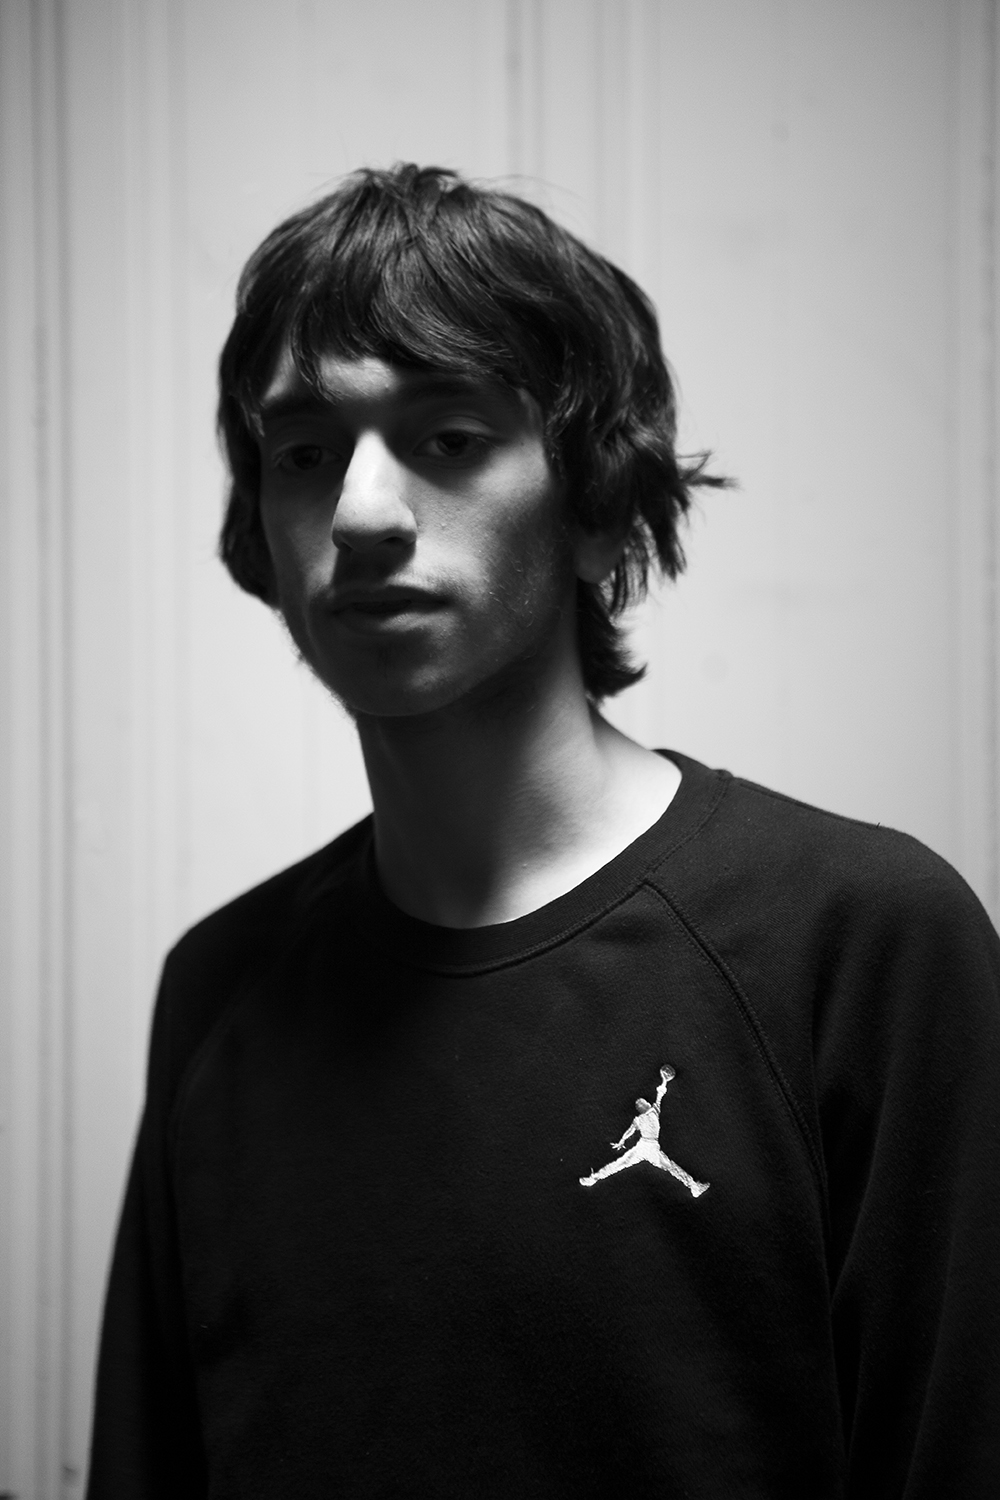 Apparition Bilal, #1, Bilal, Marseille, 2016